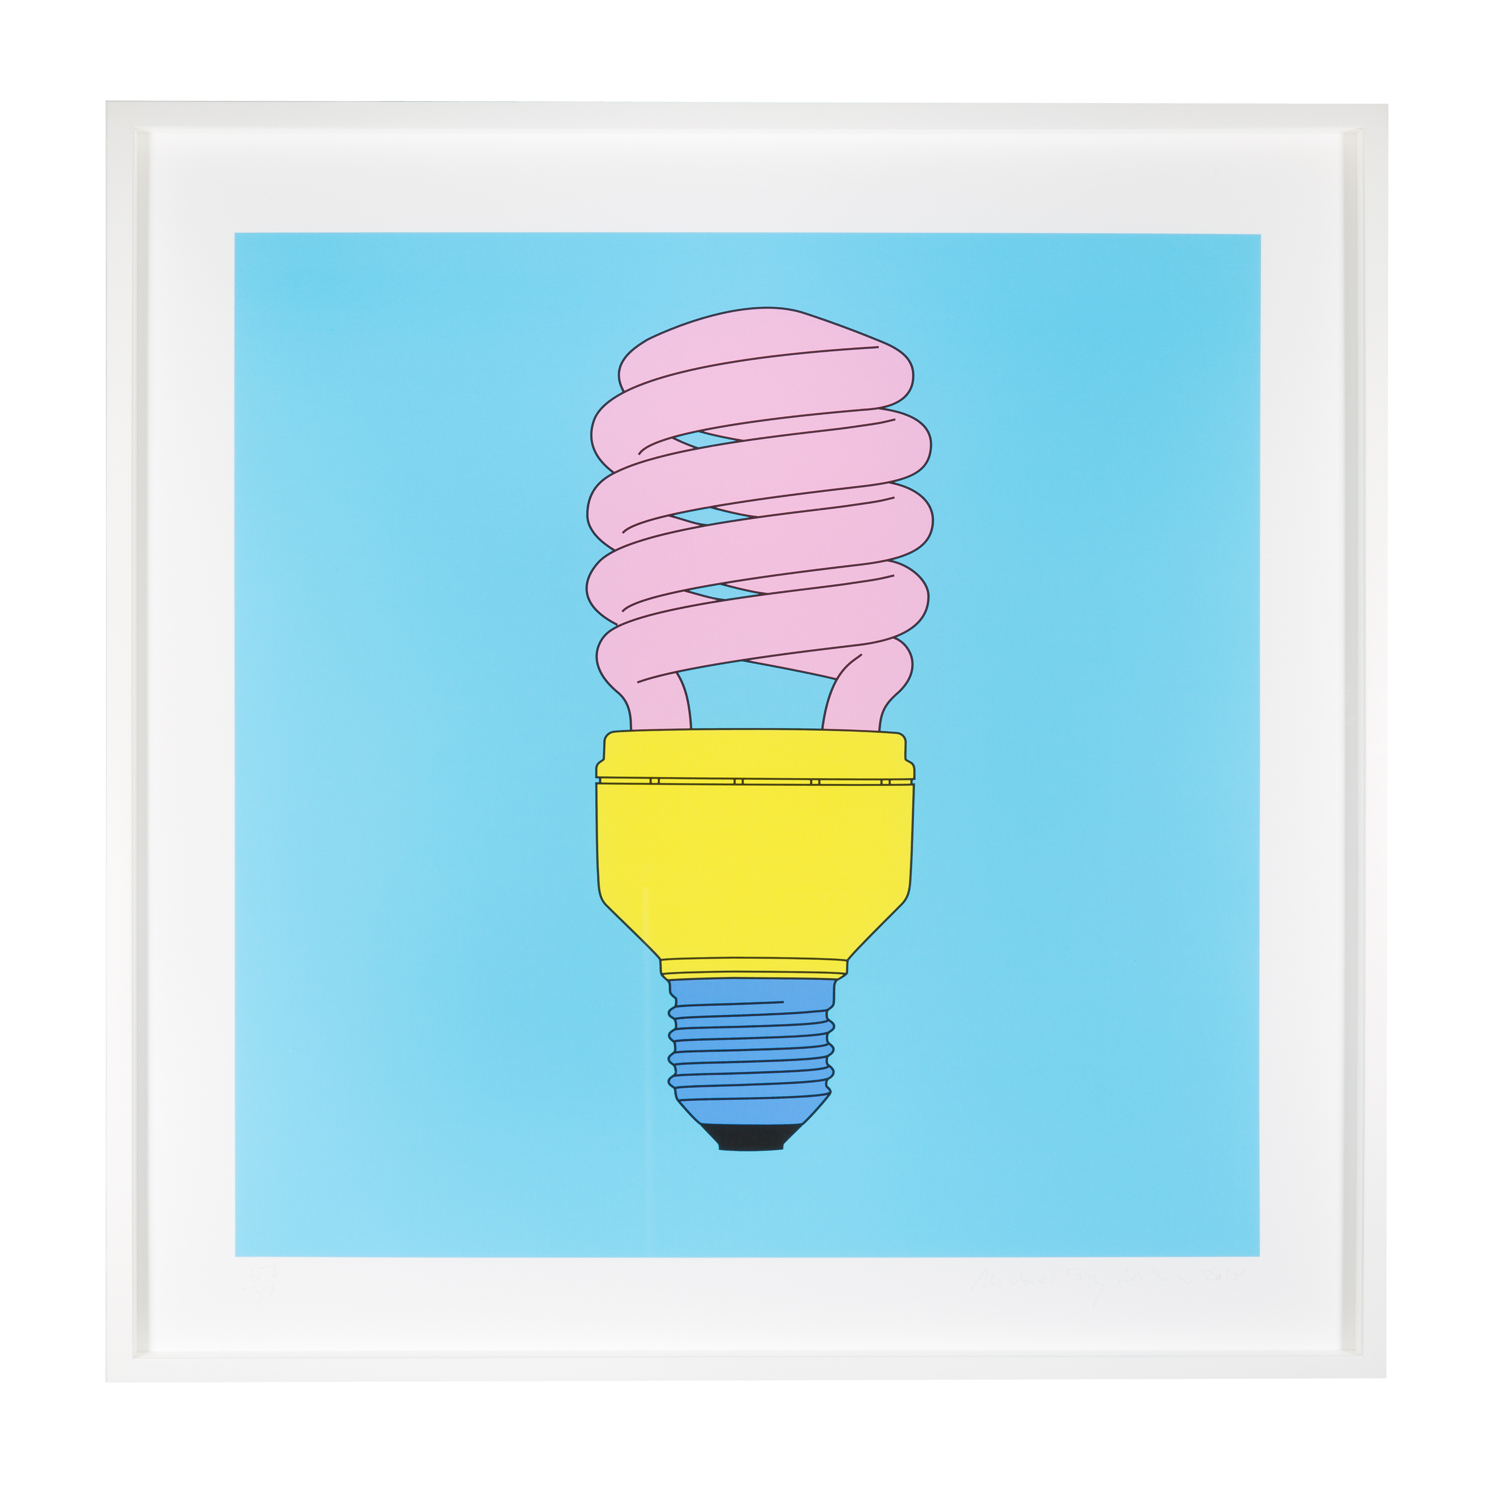 Lightbulb by Michael Craig-Martin